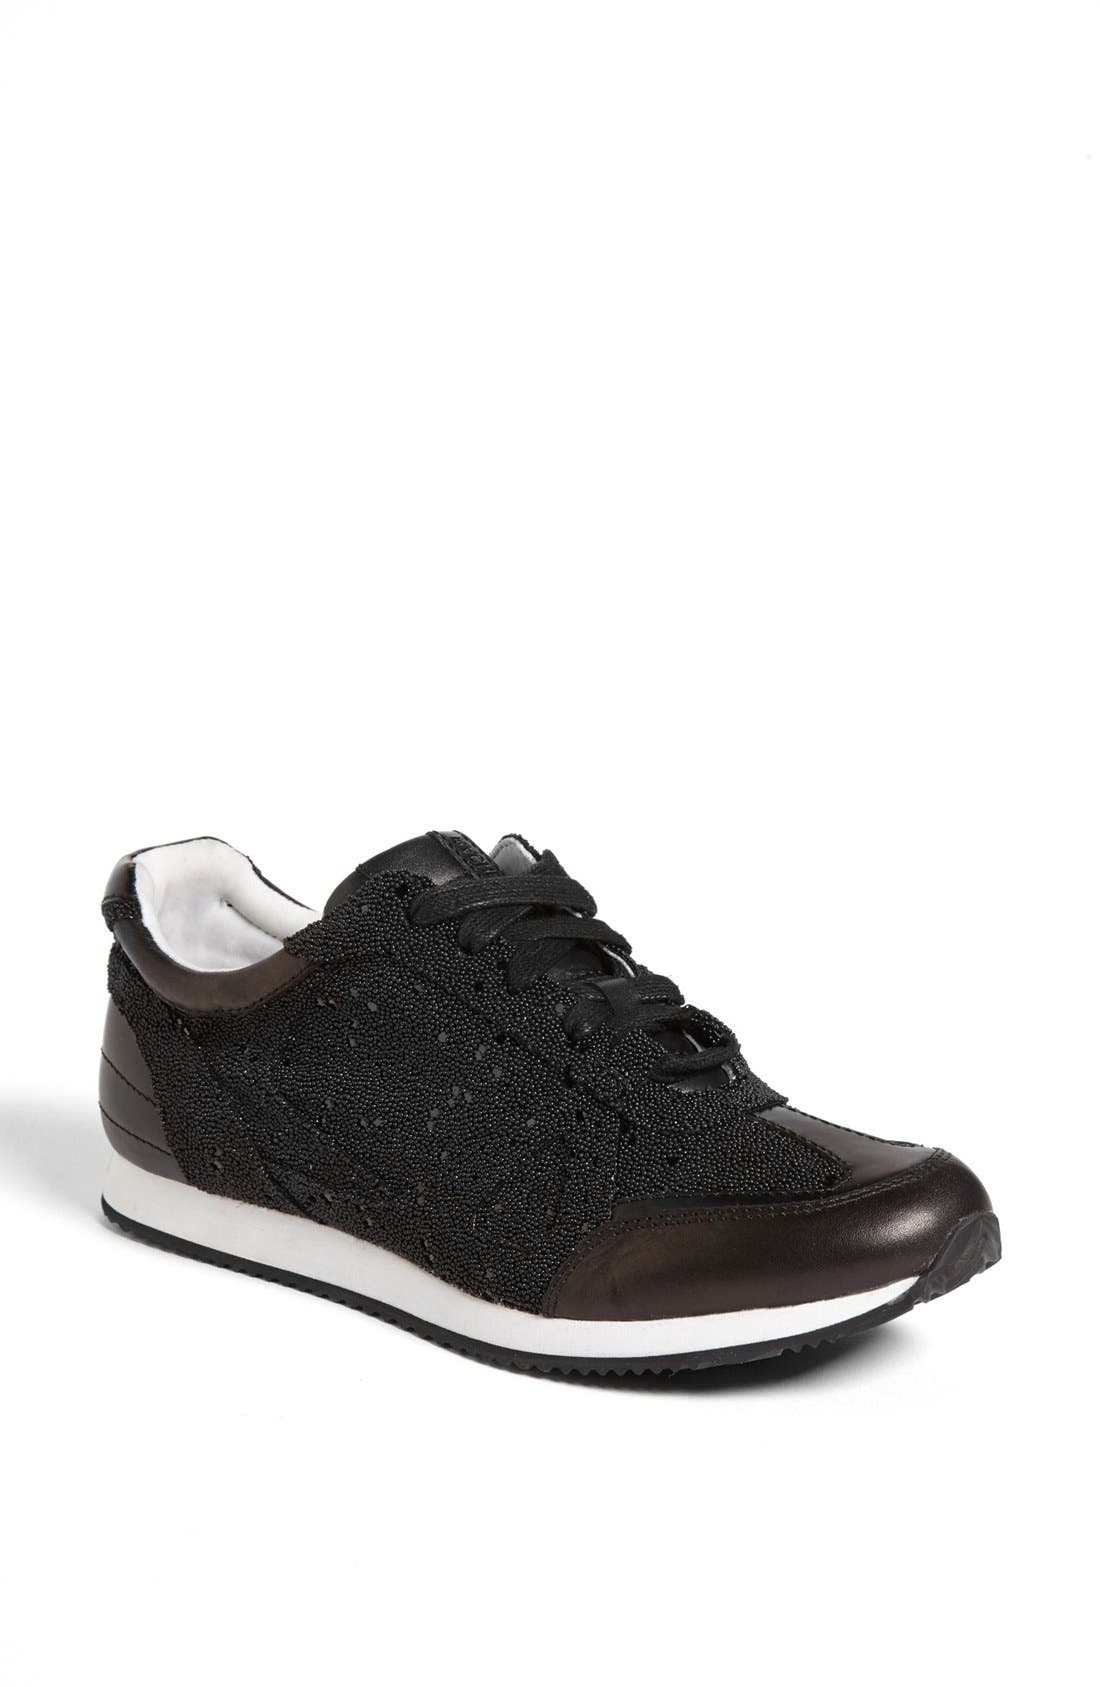 Alternate Image 1 Selected - Rachel Zoe 'Jeni' Lace-Up Sneaker